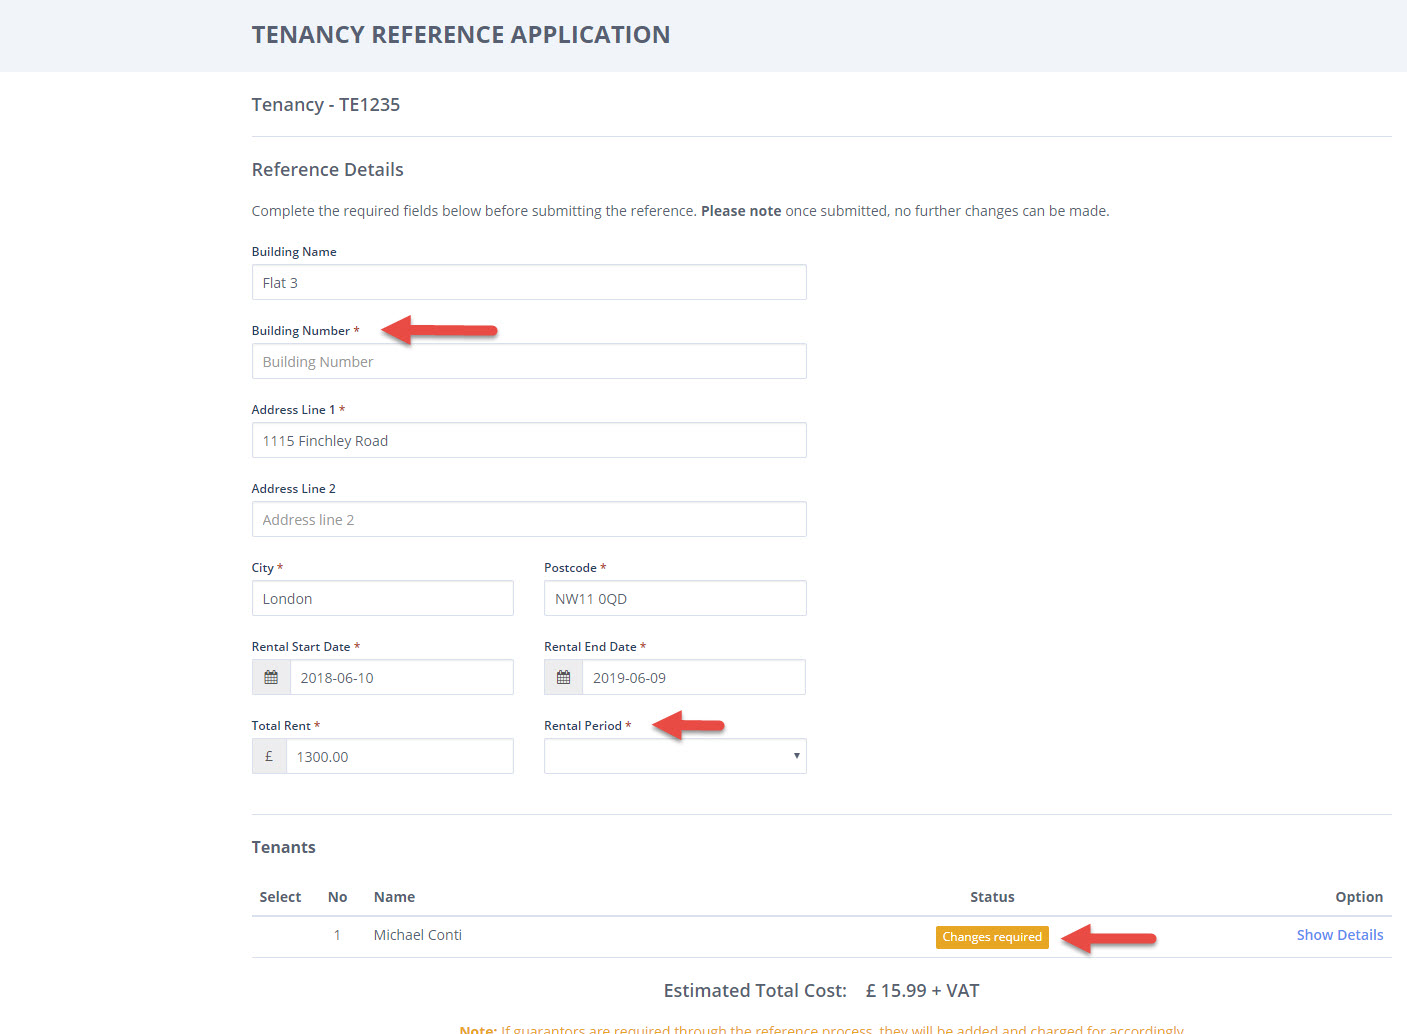 tenancy-reference-application